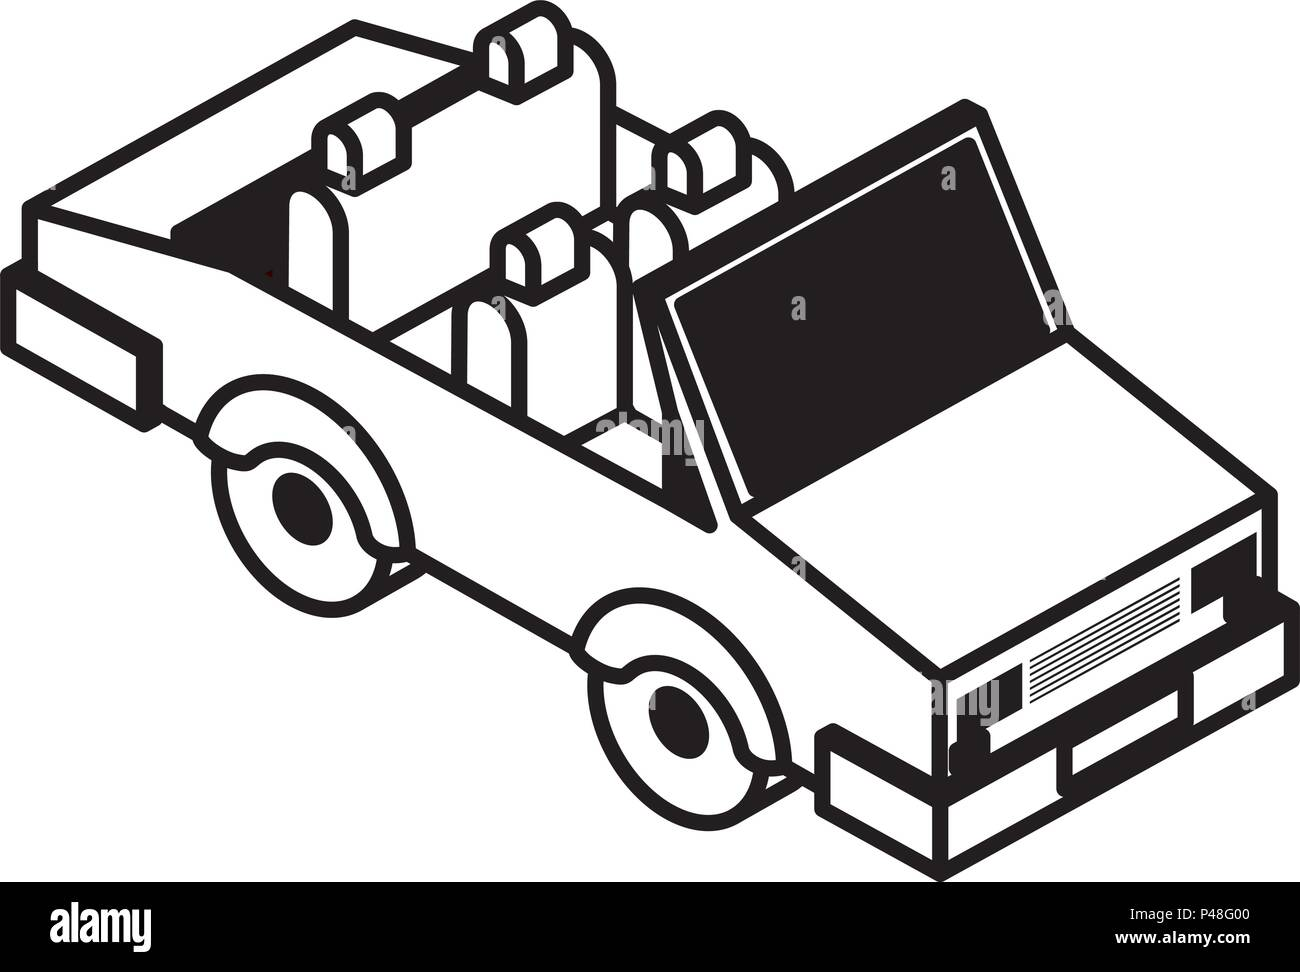 sport utility vehicle stock photos sport utility vehicle stock Mahindra Dealers in New York convertible car isometric icon stock image